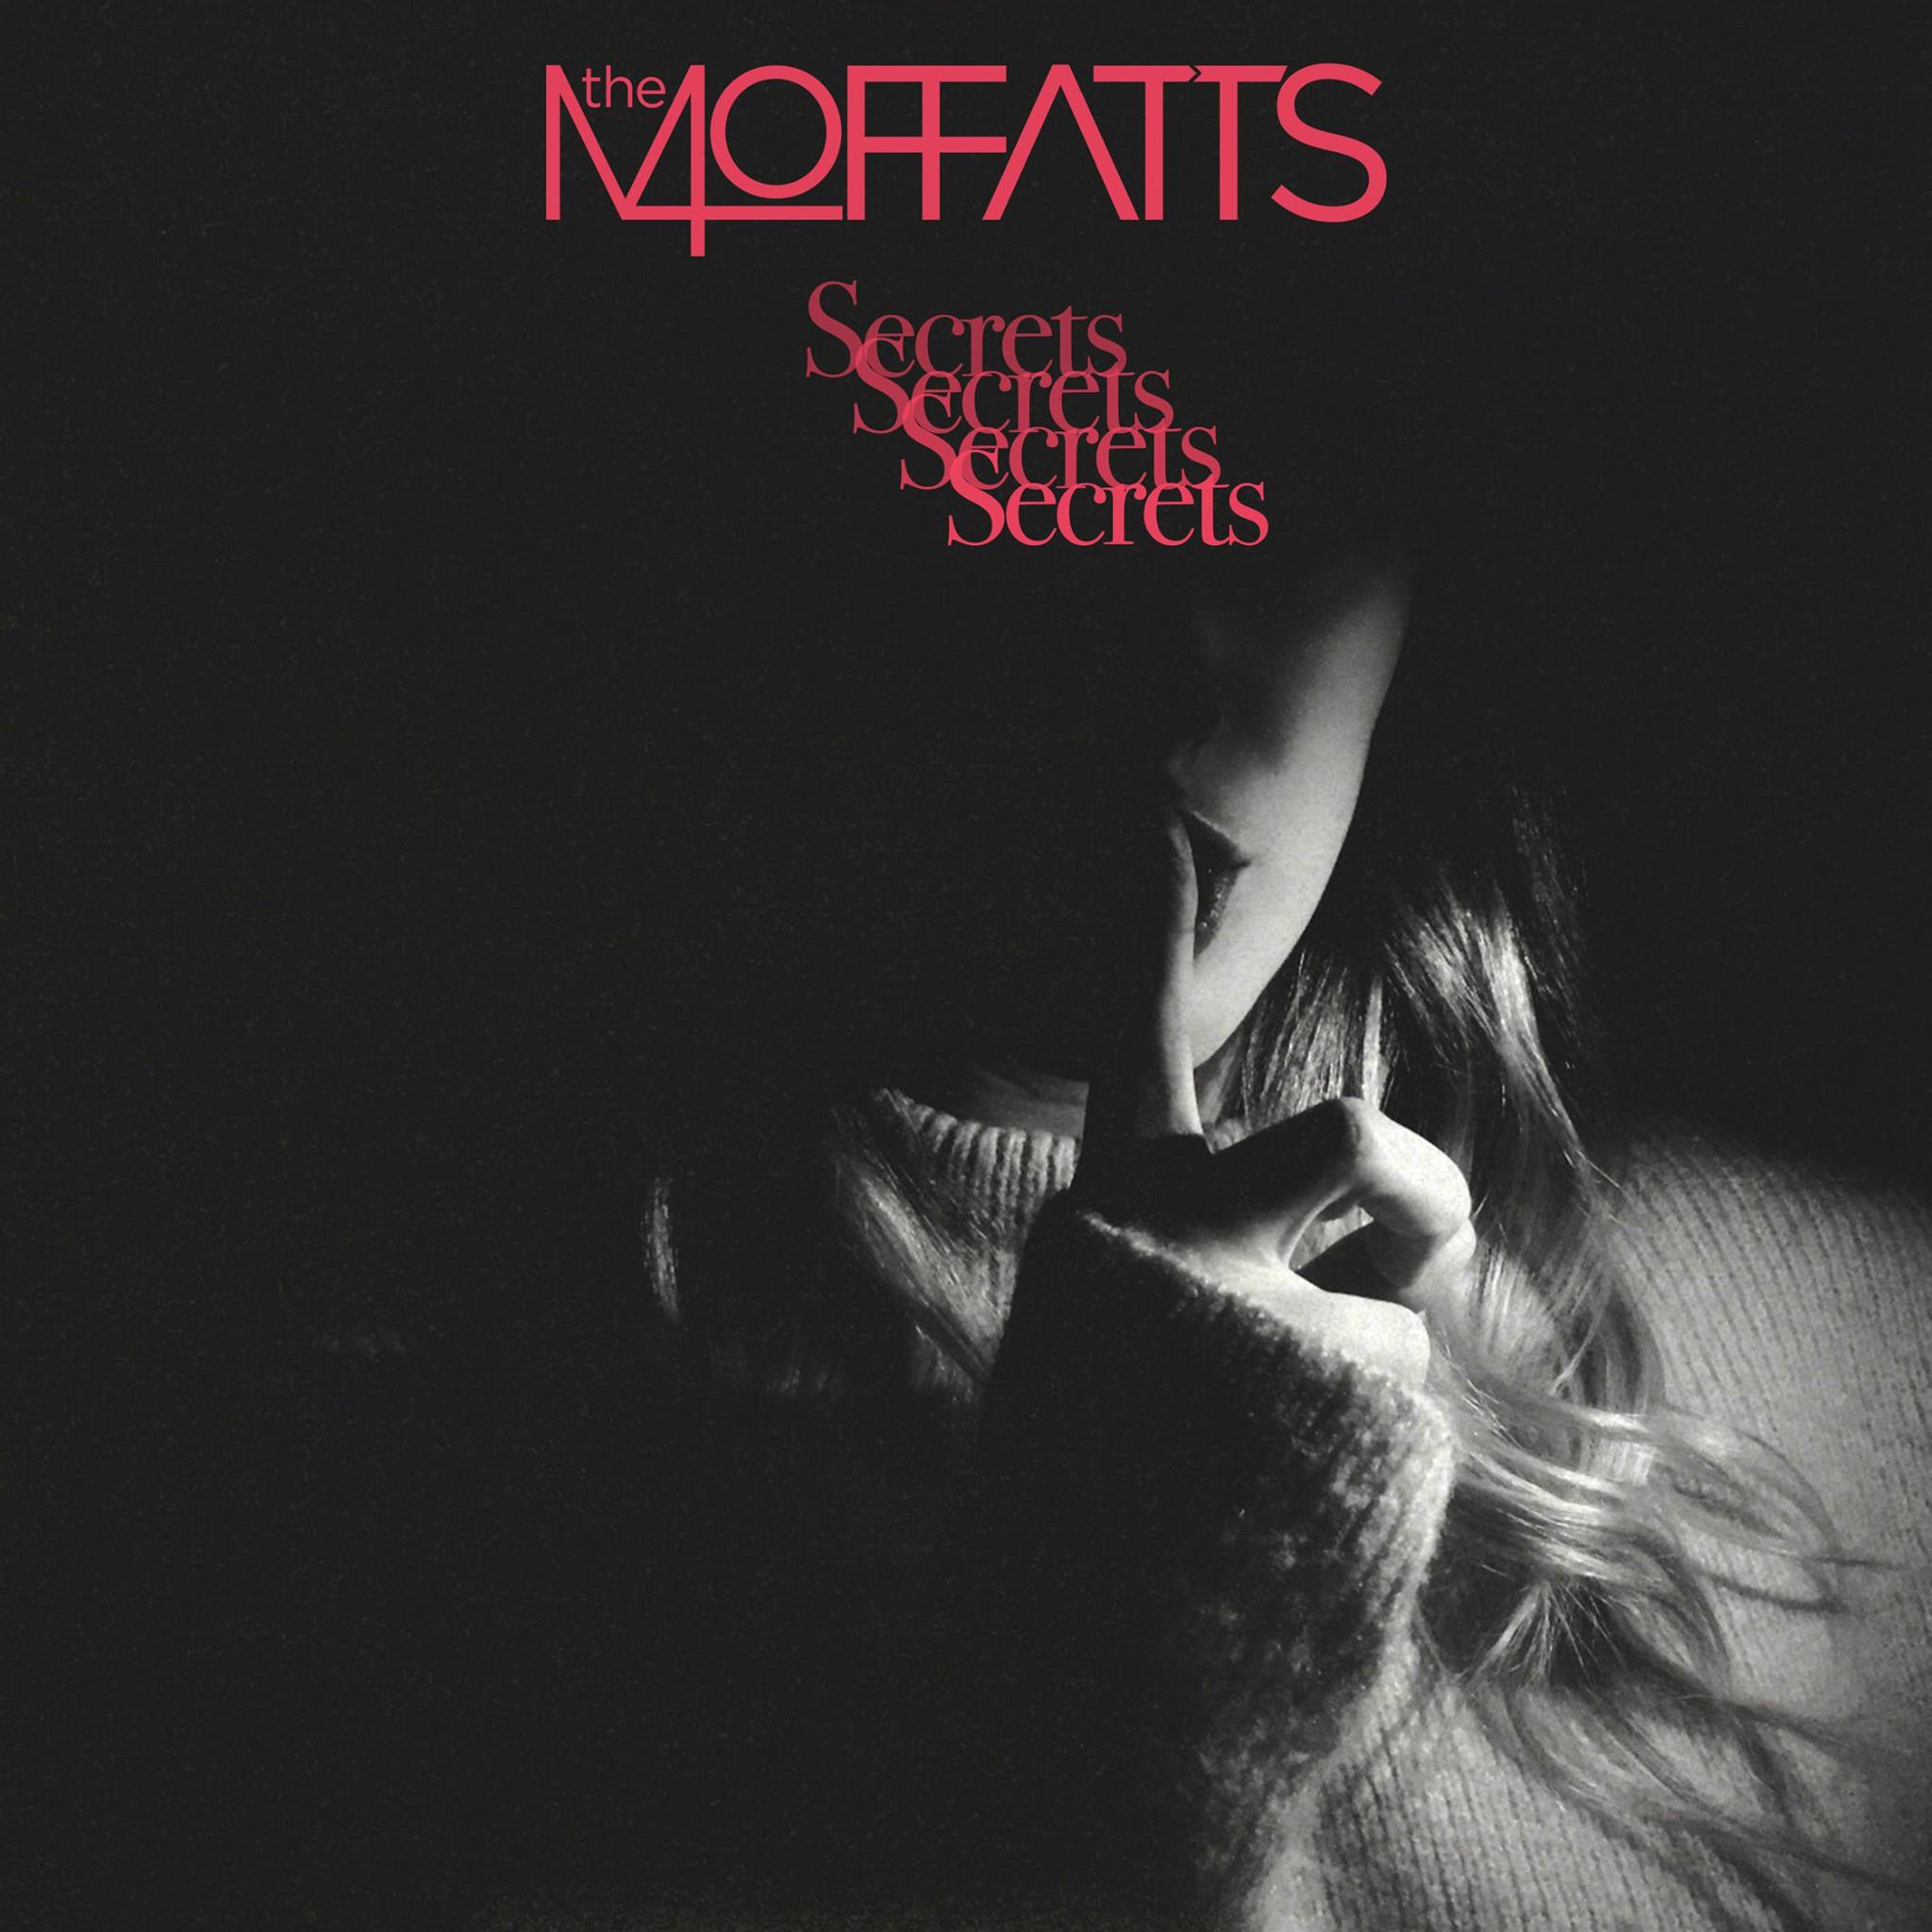 Secrets, the newest single from The Moffatts, from the album of the same name.